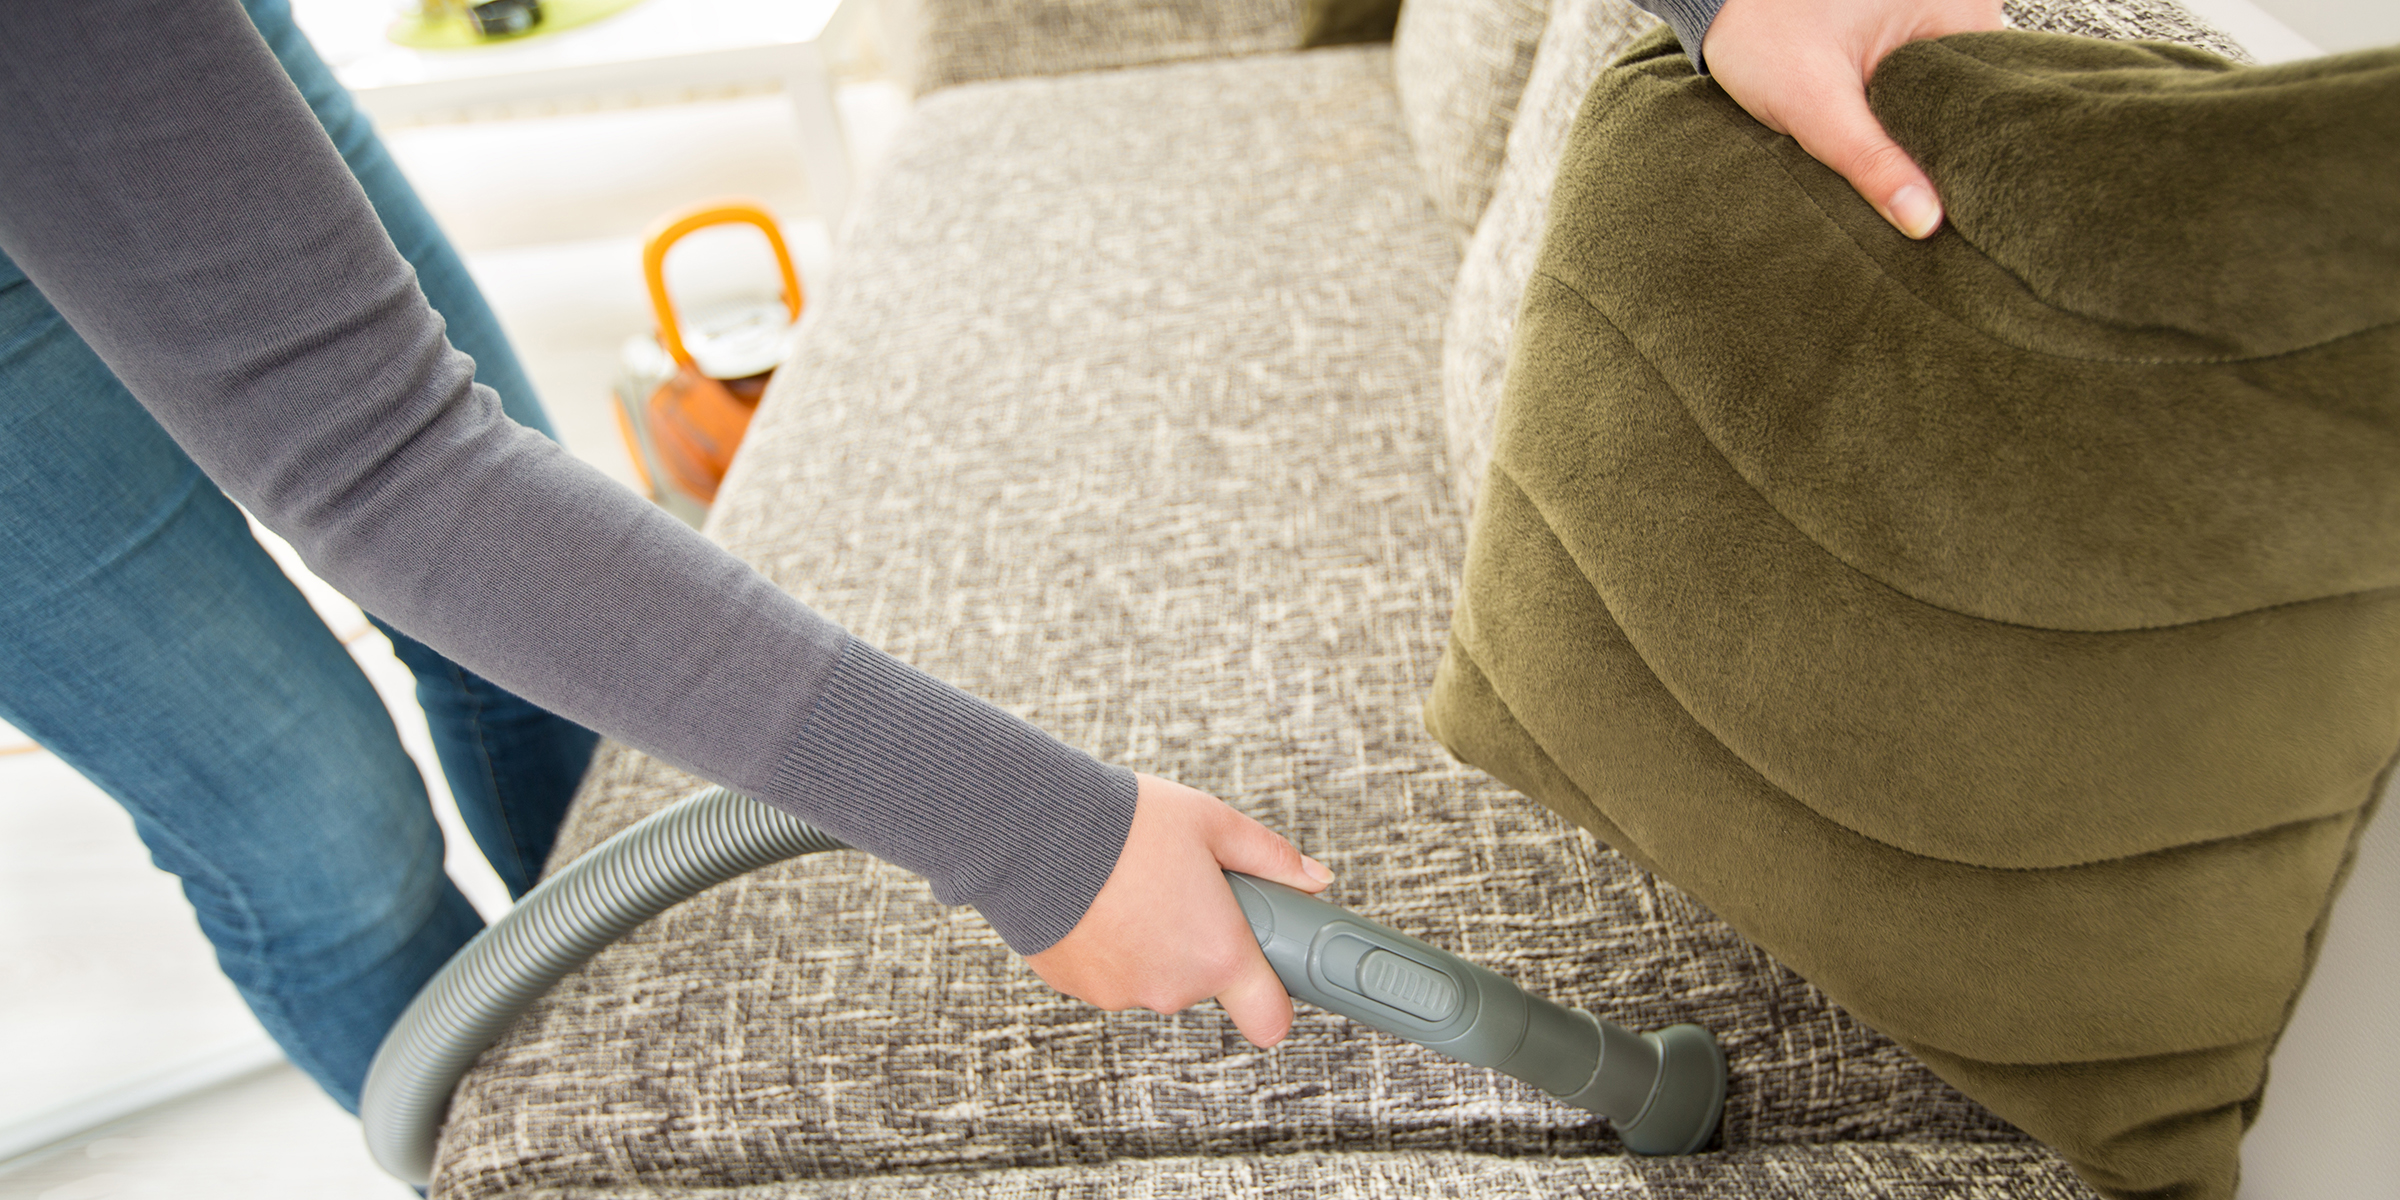 How to clean upholstery: Clean couches, cars and more